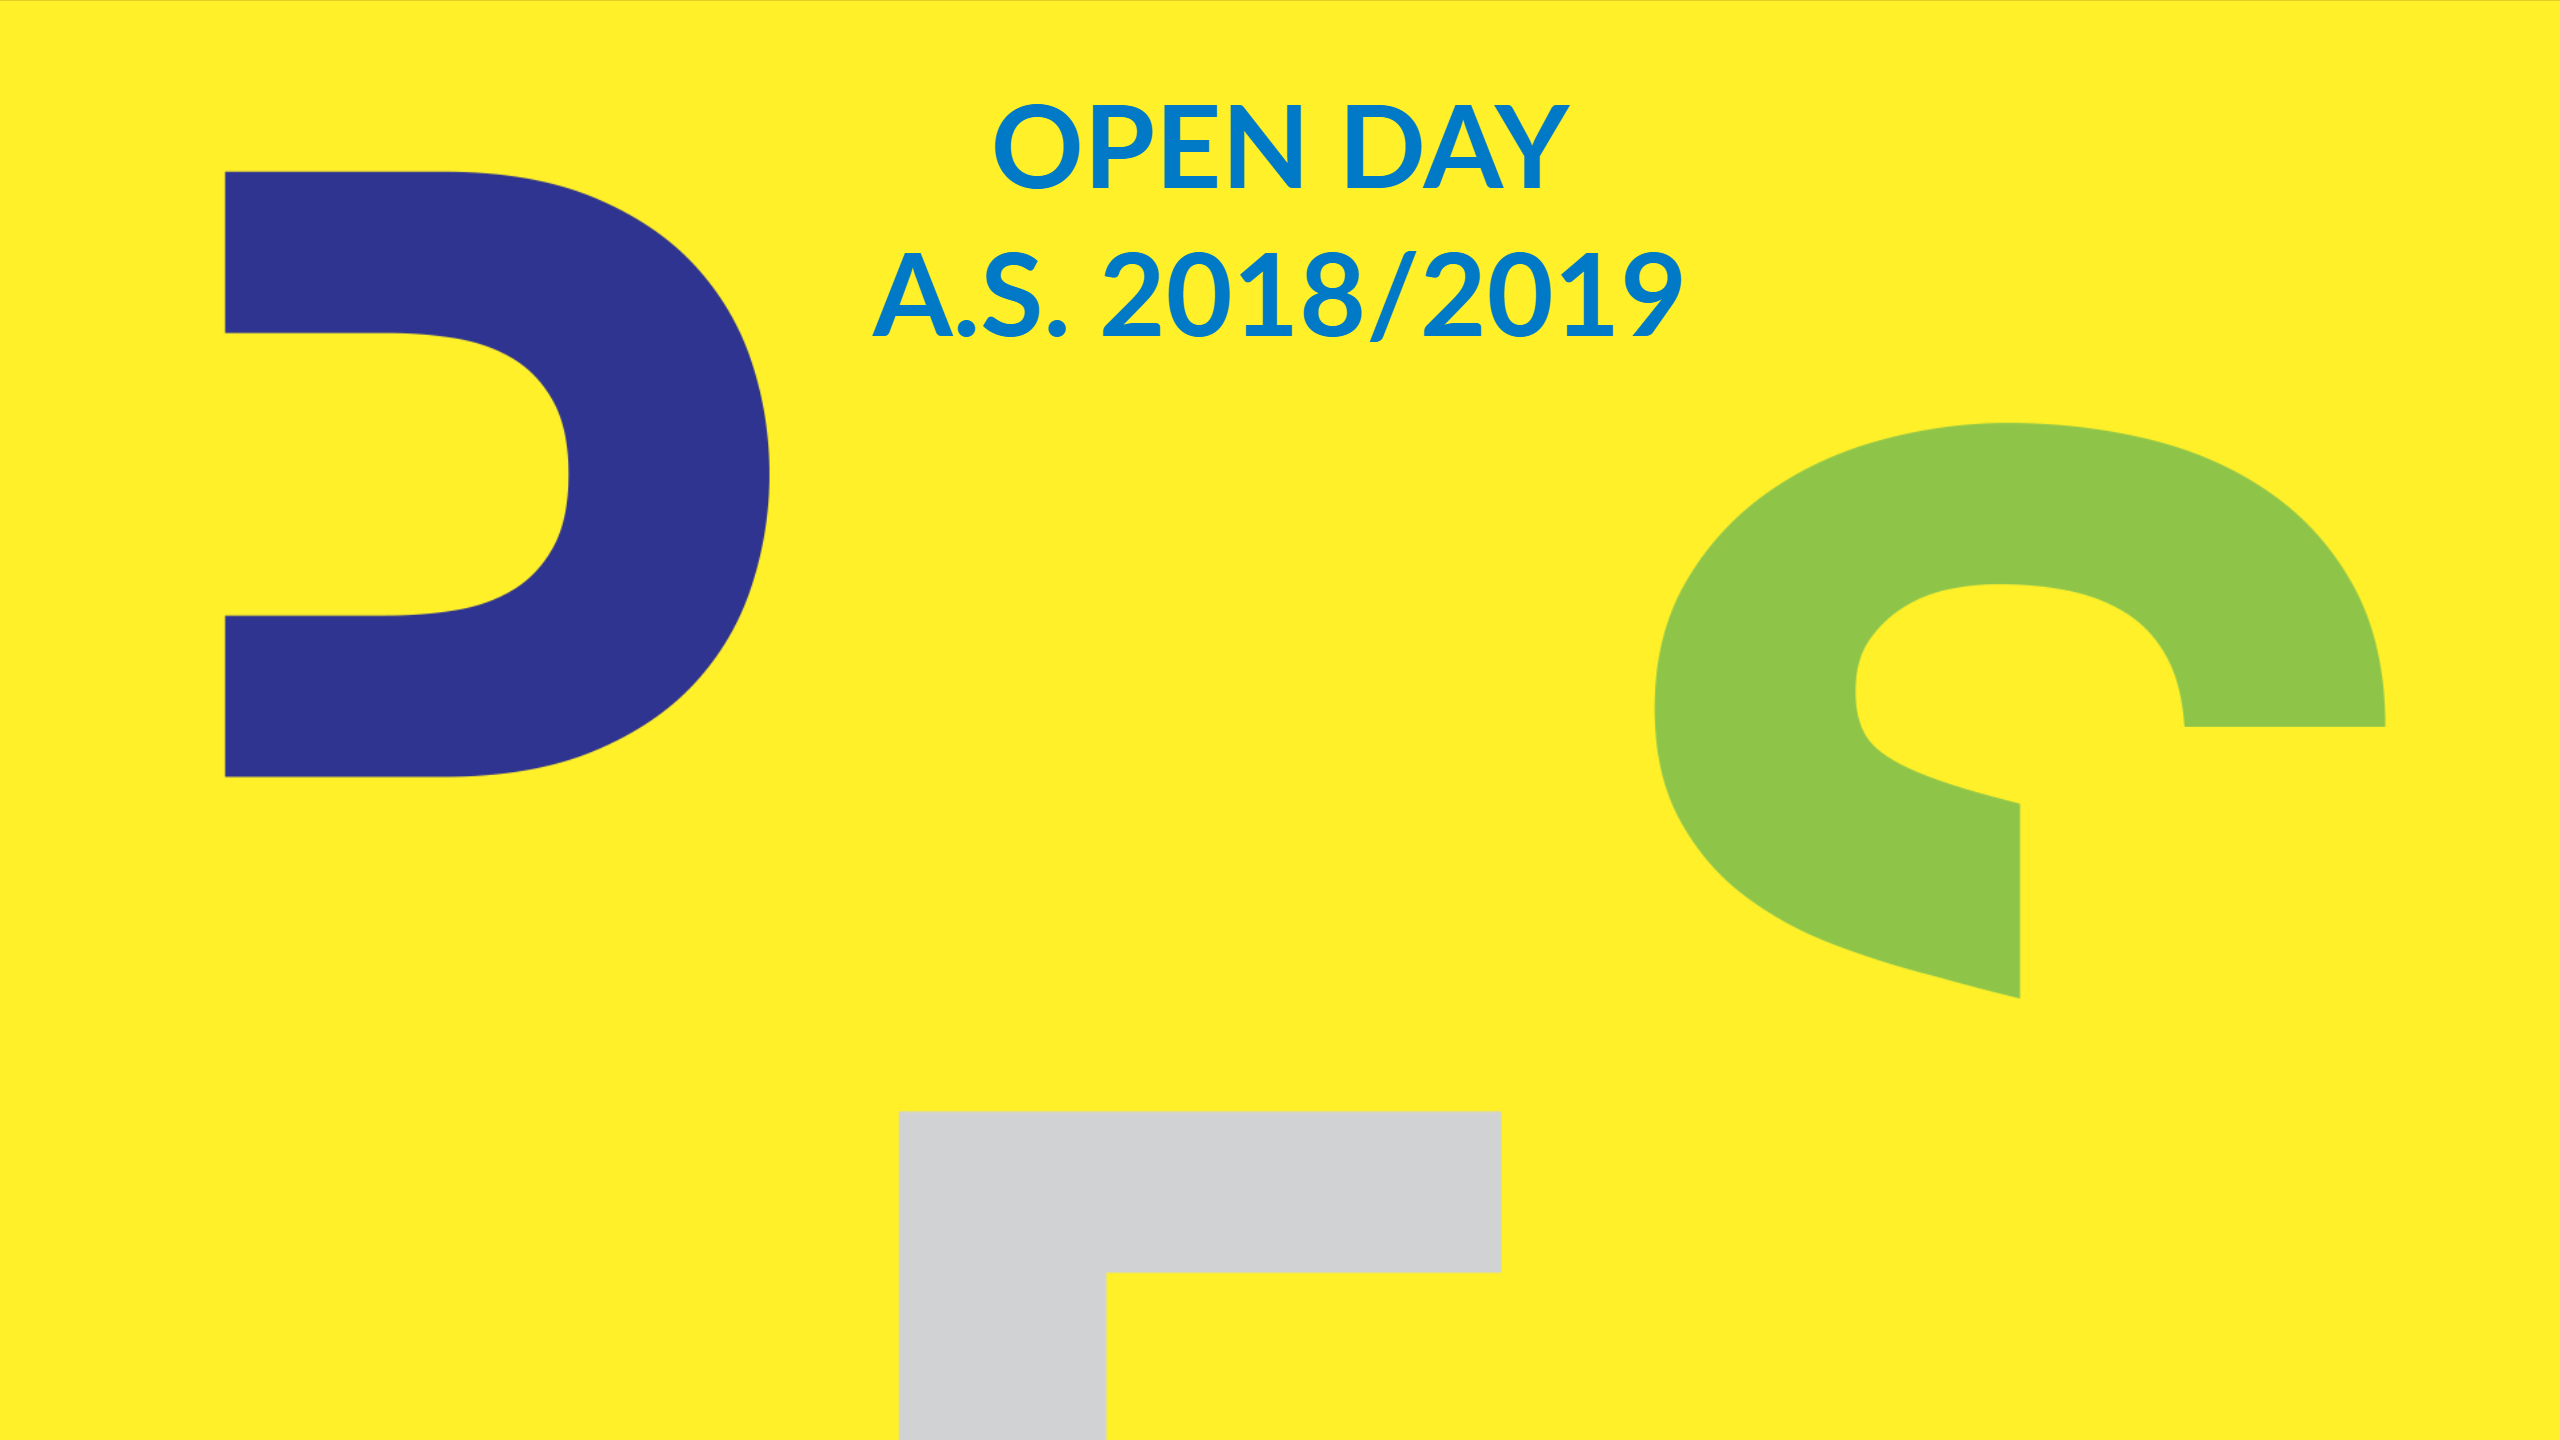 OPEN DAY A.S. 2018/2019